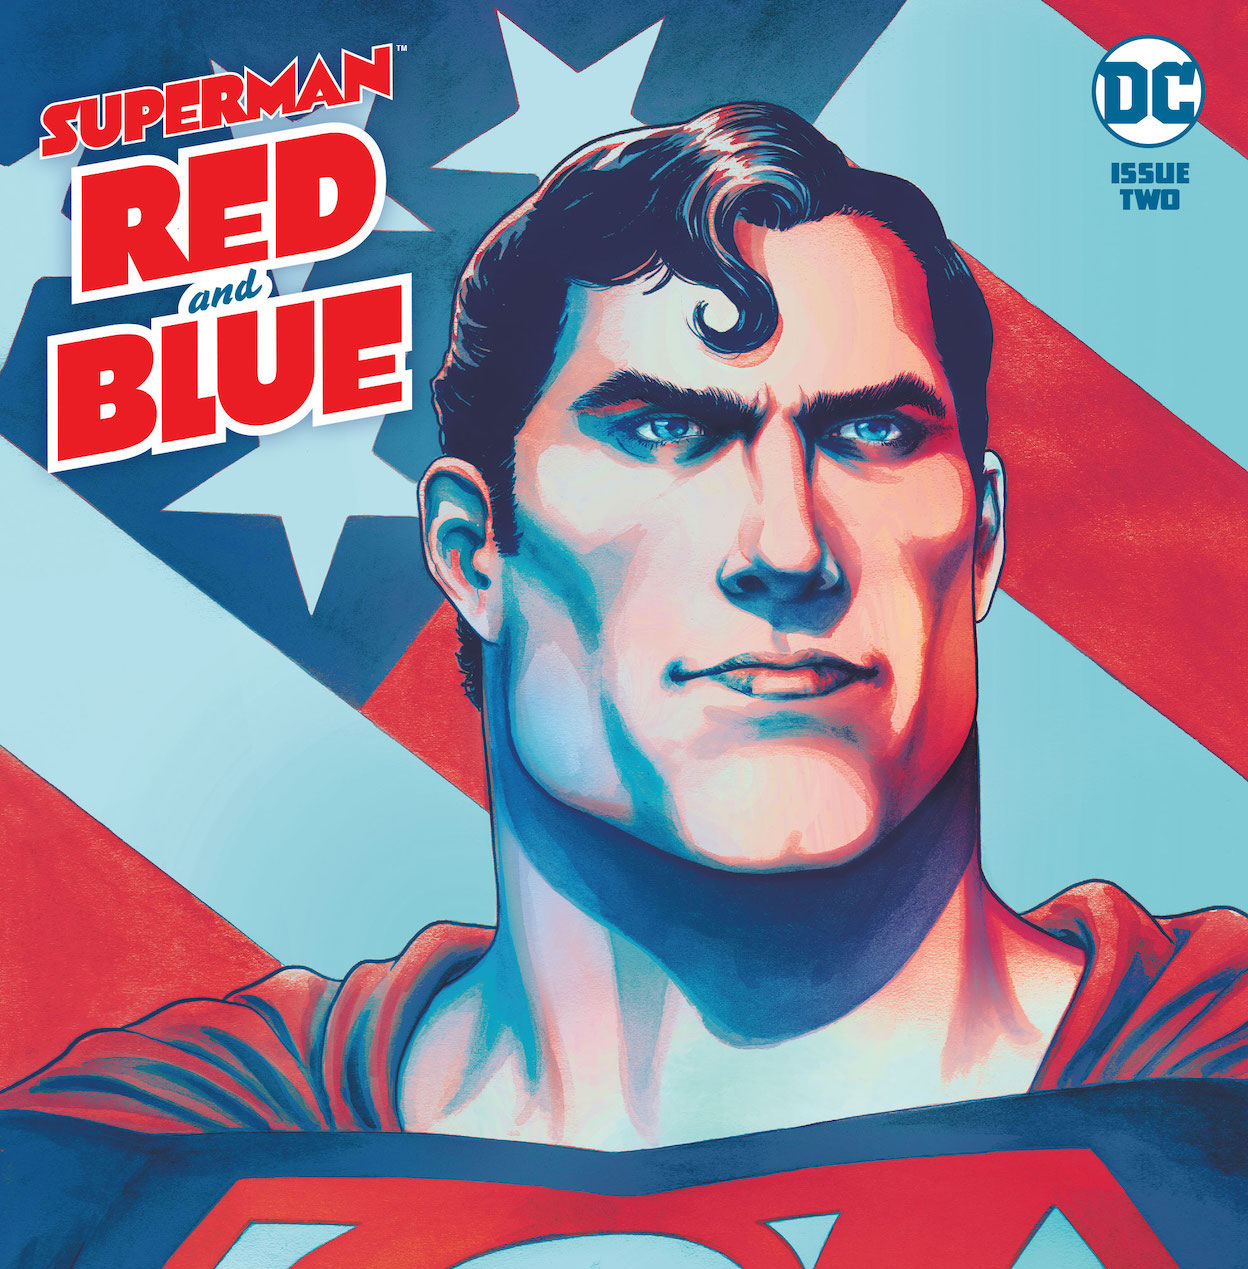 'Superman Red and Blue' #2 offers an eclectic mix of stories